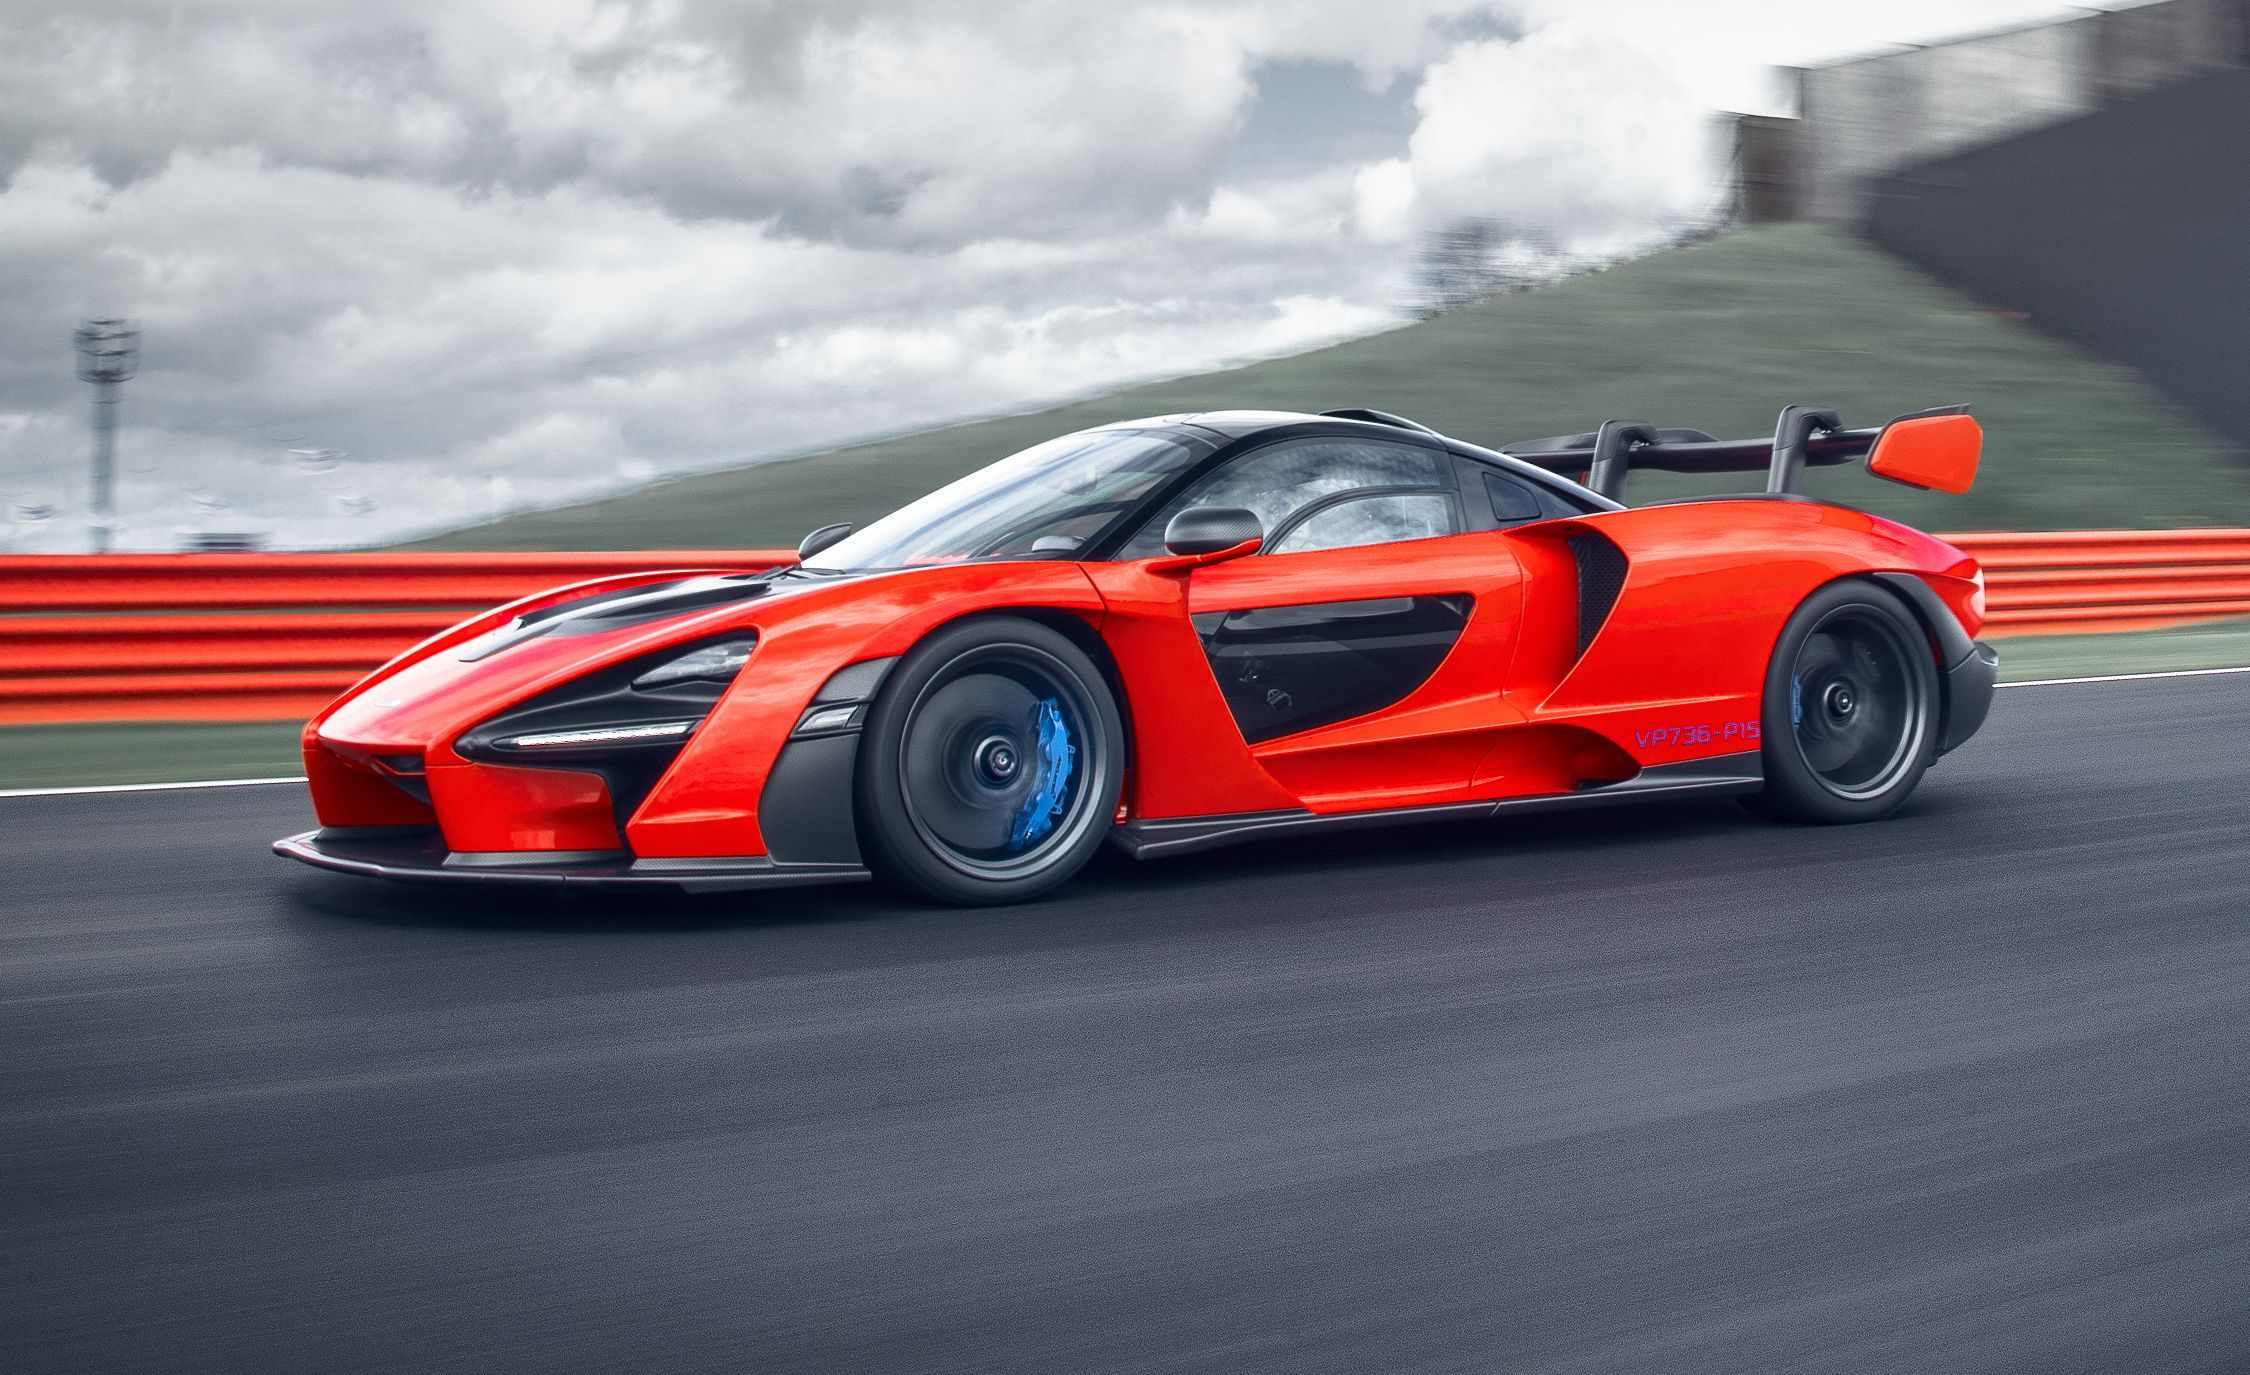 2019 mclaren senna first drive: may the downforce be with you